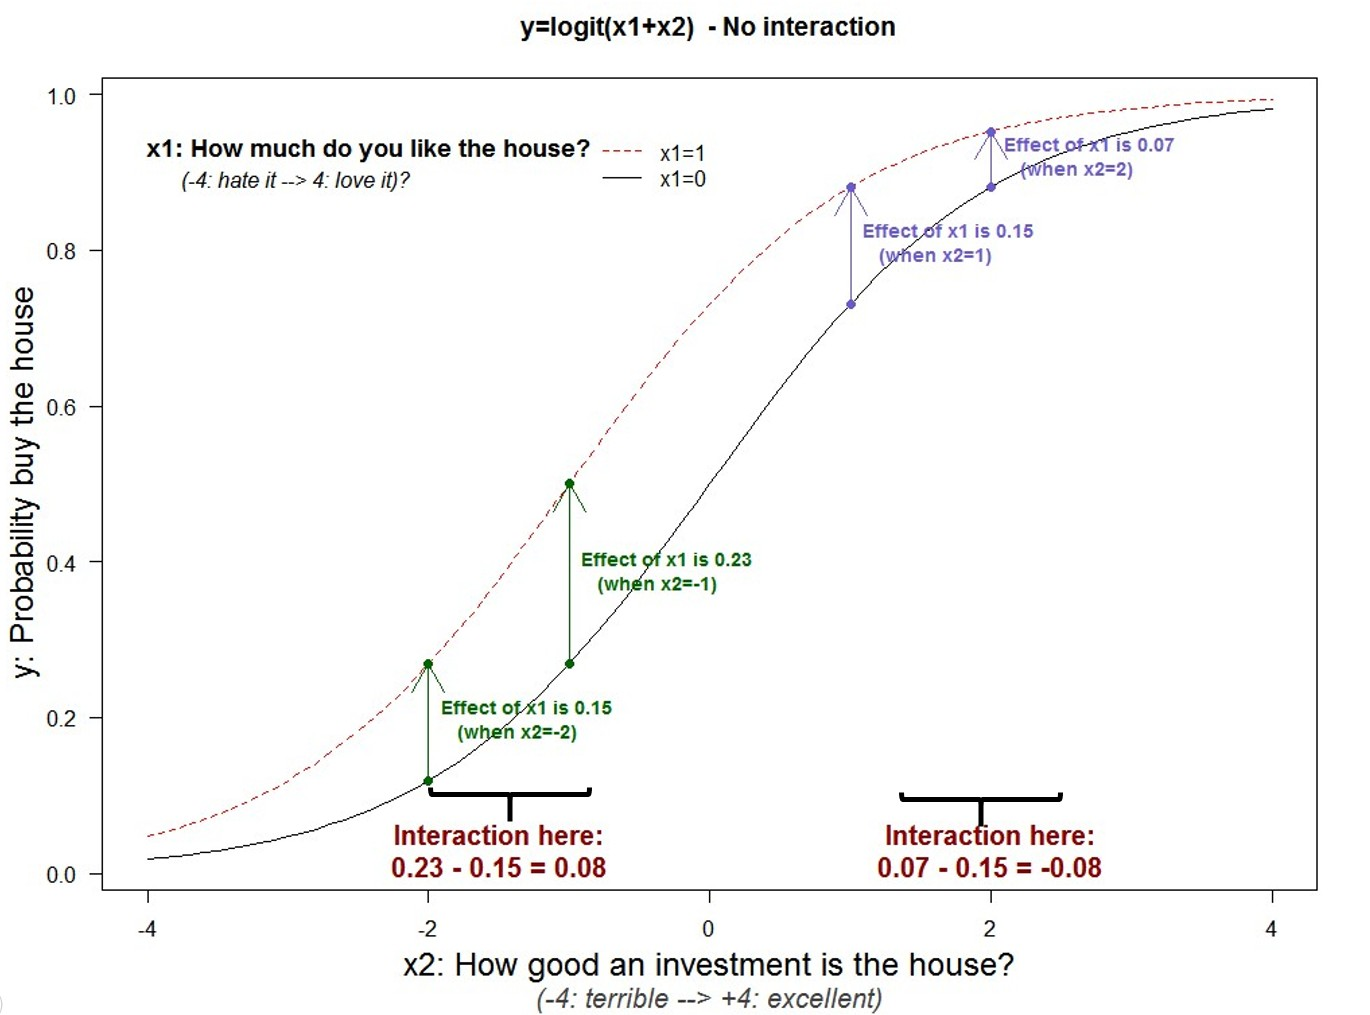 57] Interactions in Logit Regressions: Why Positive May Mean